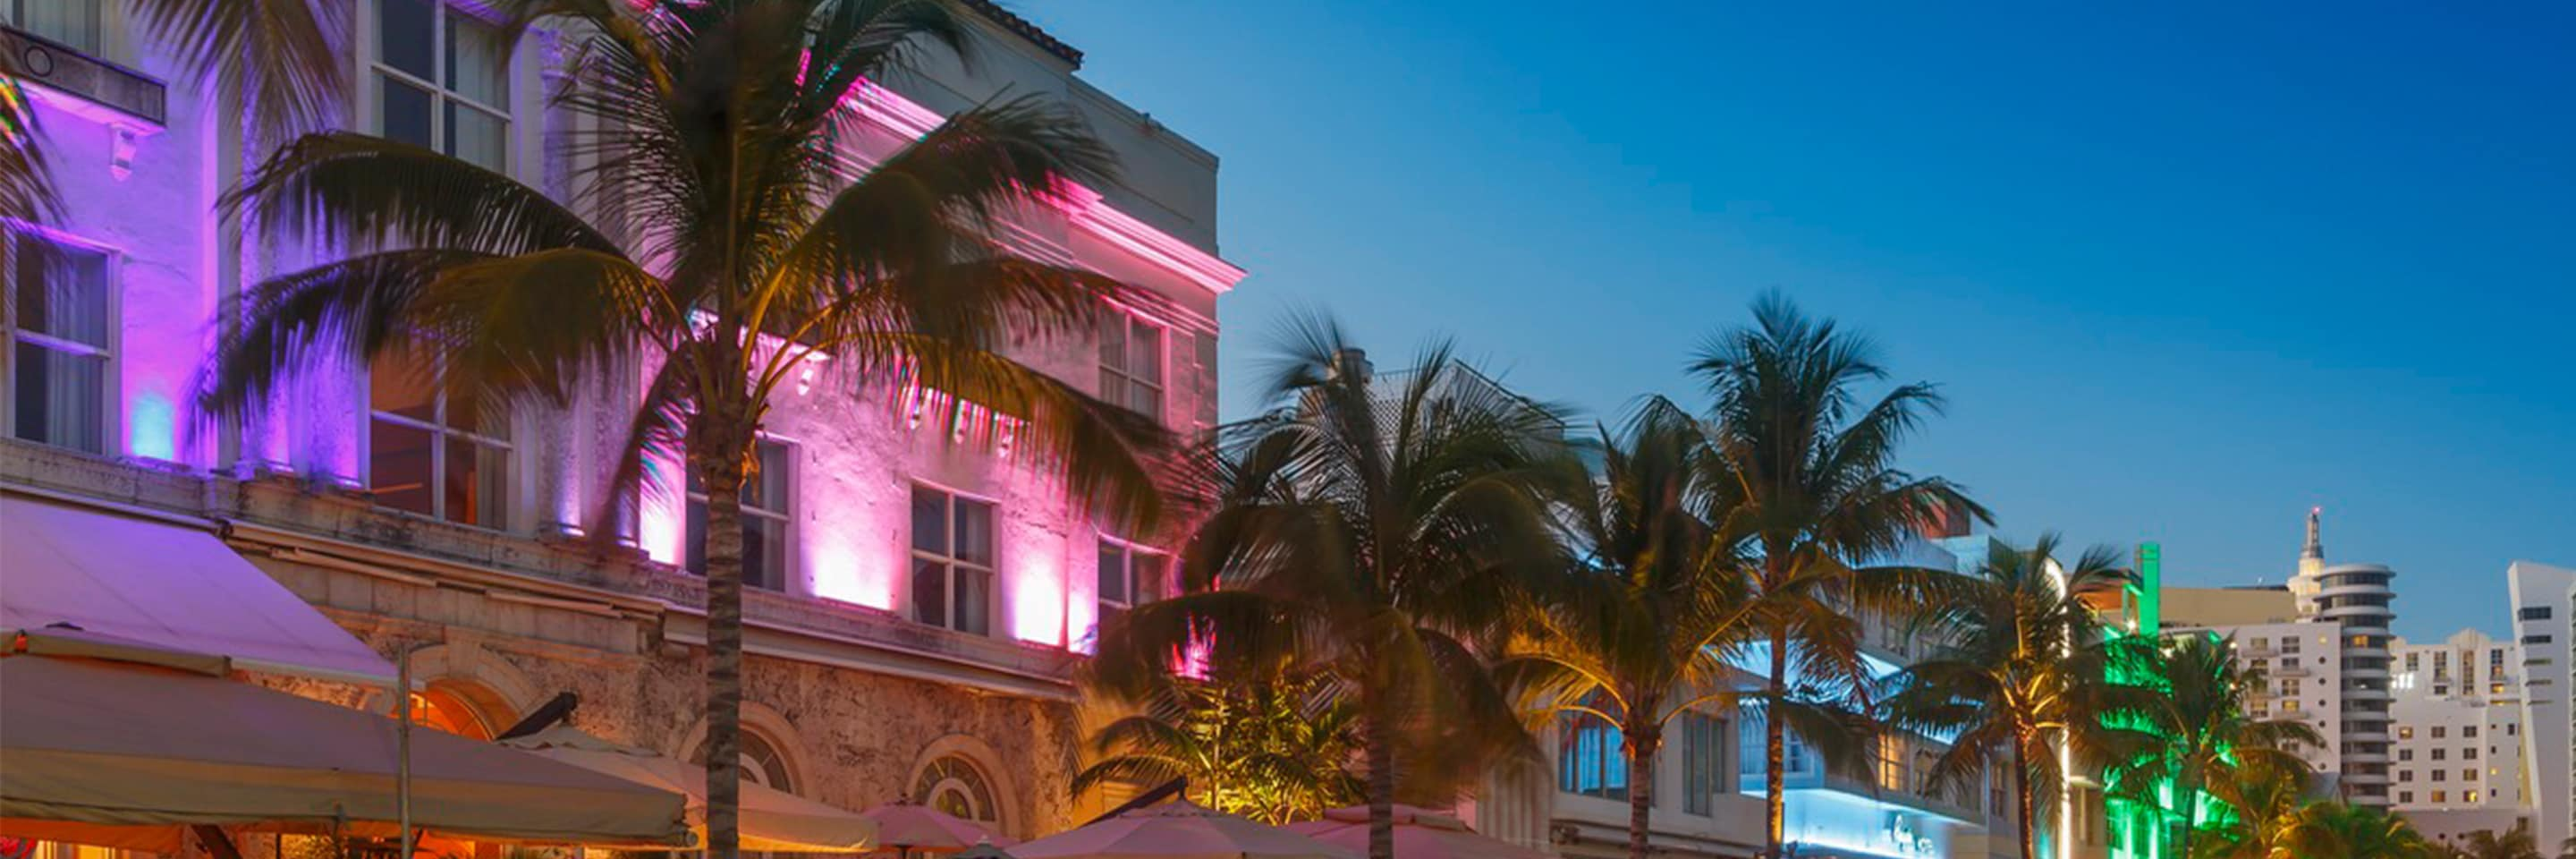 Hotels In West Palm Beach On The Beach